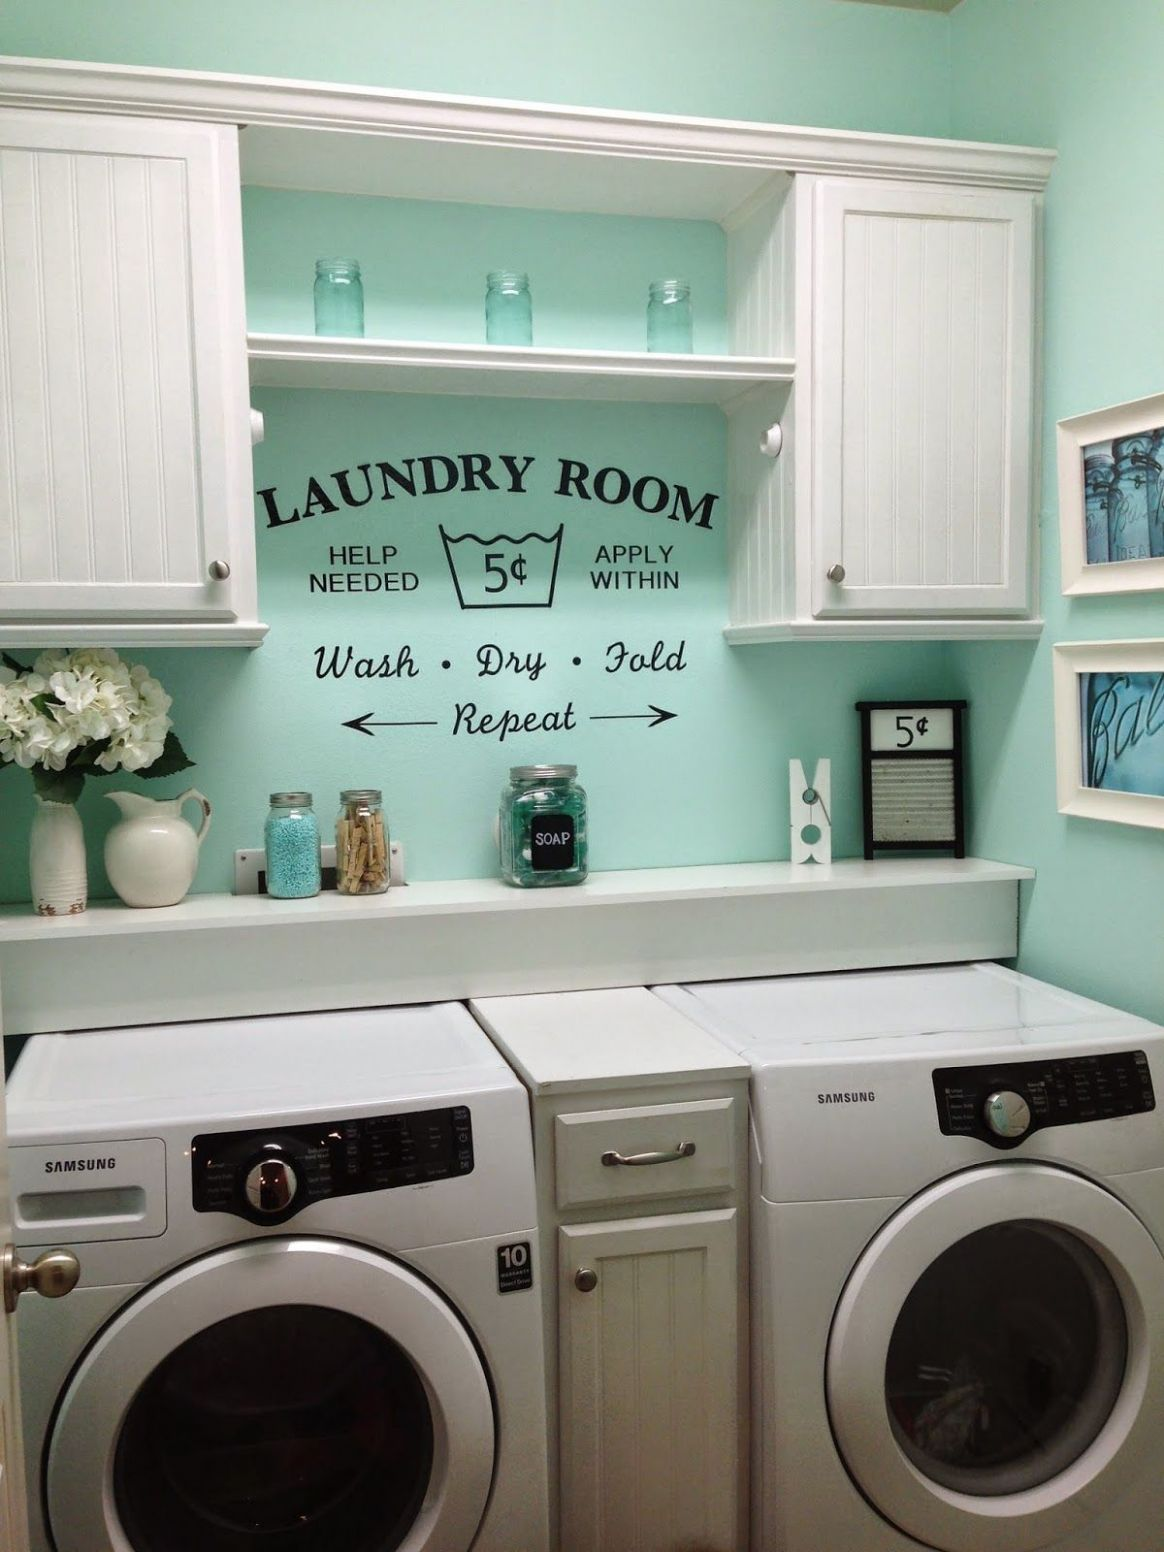 Rustic Shabby Chic Laundry Room, vintage Vinyl decal | Kleine ..